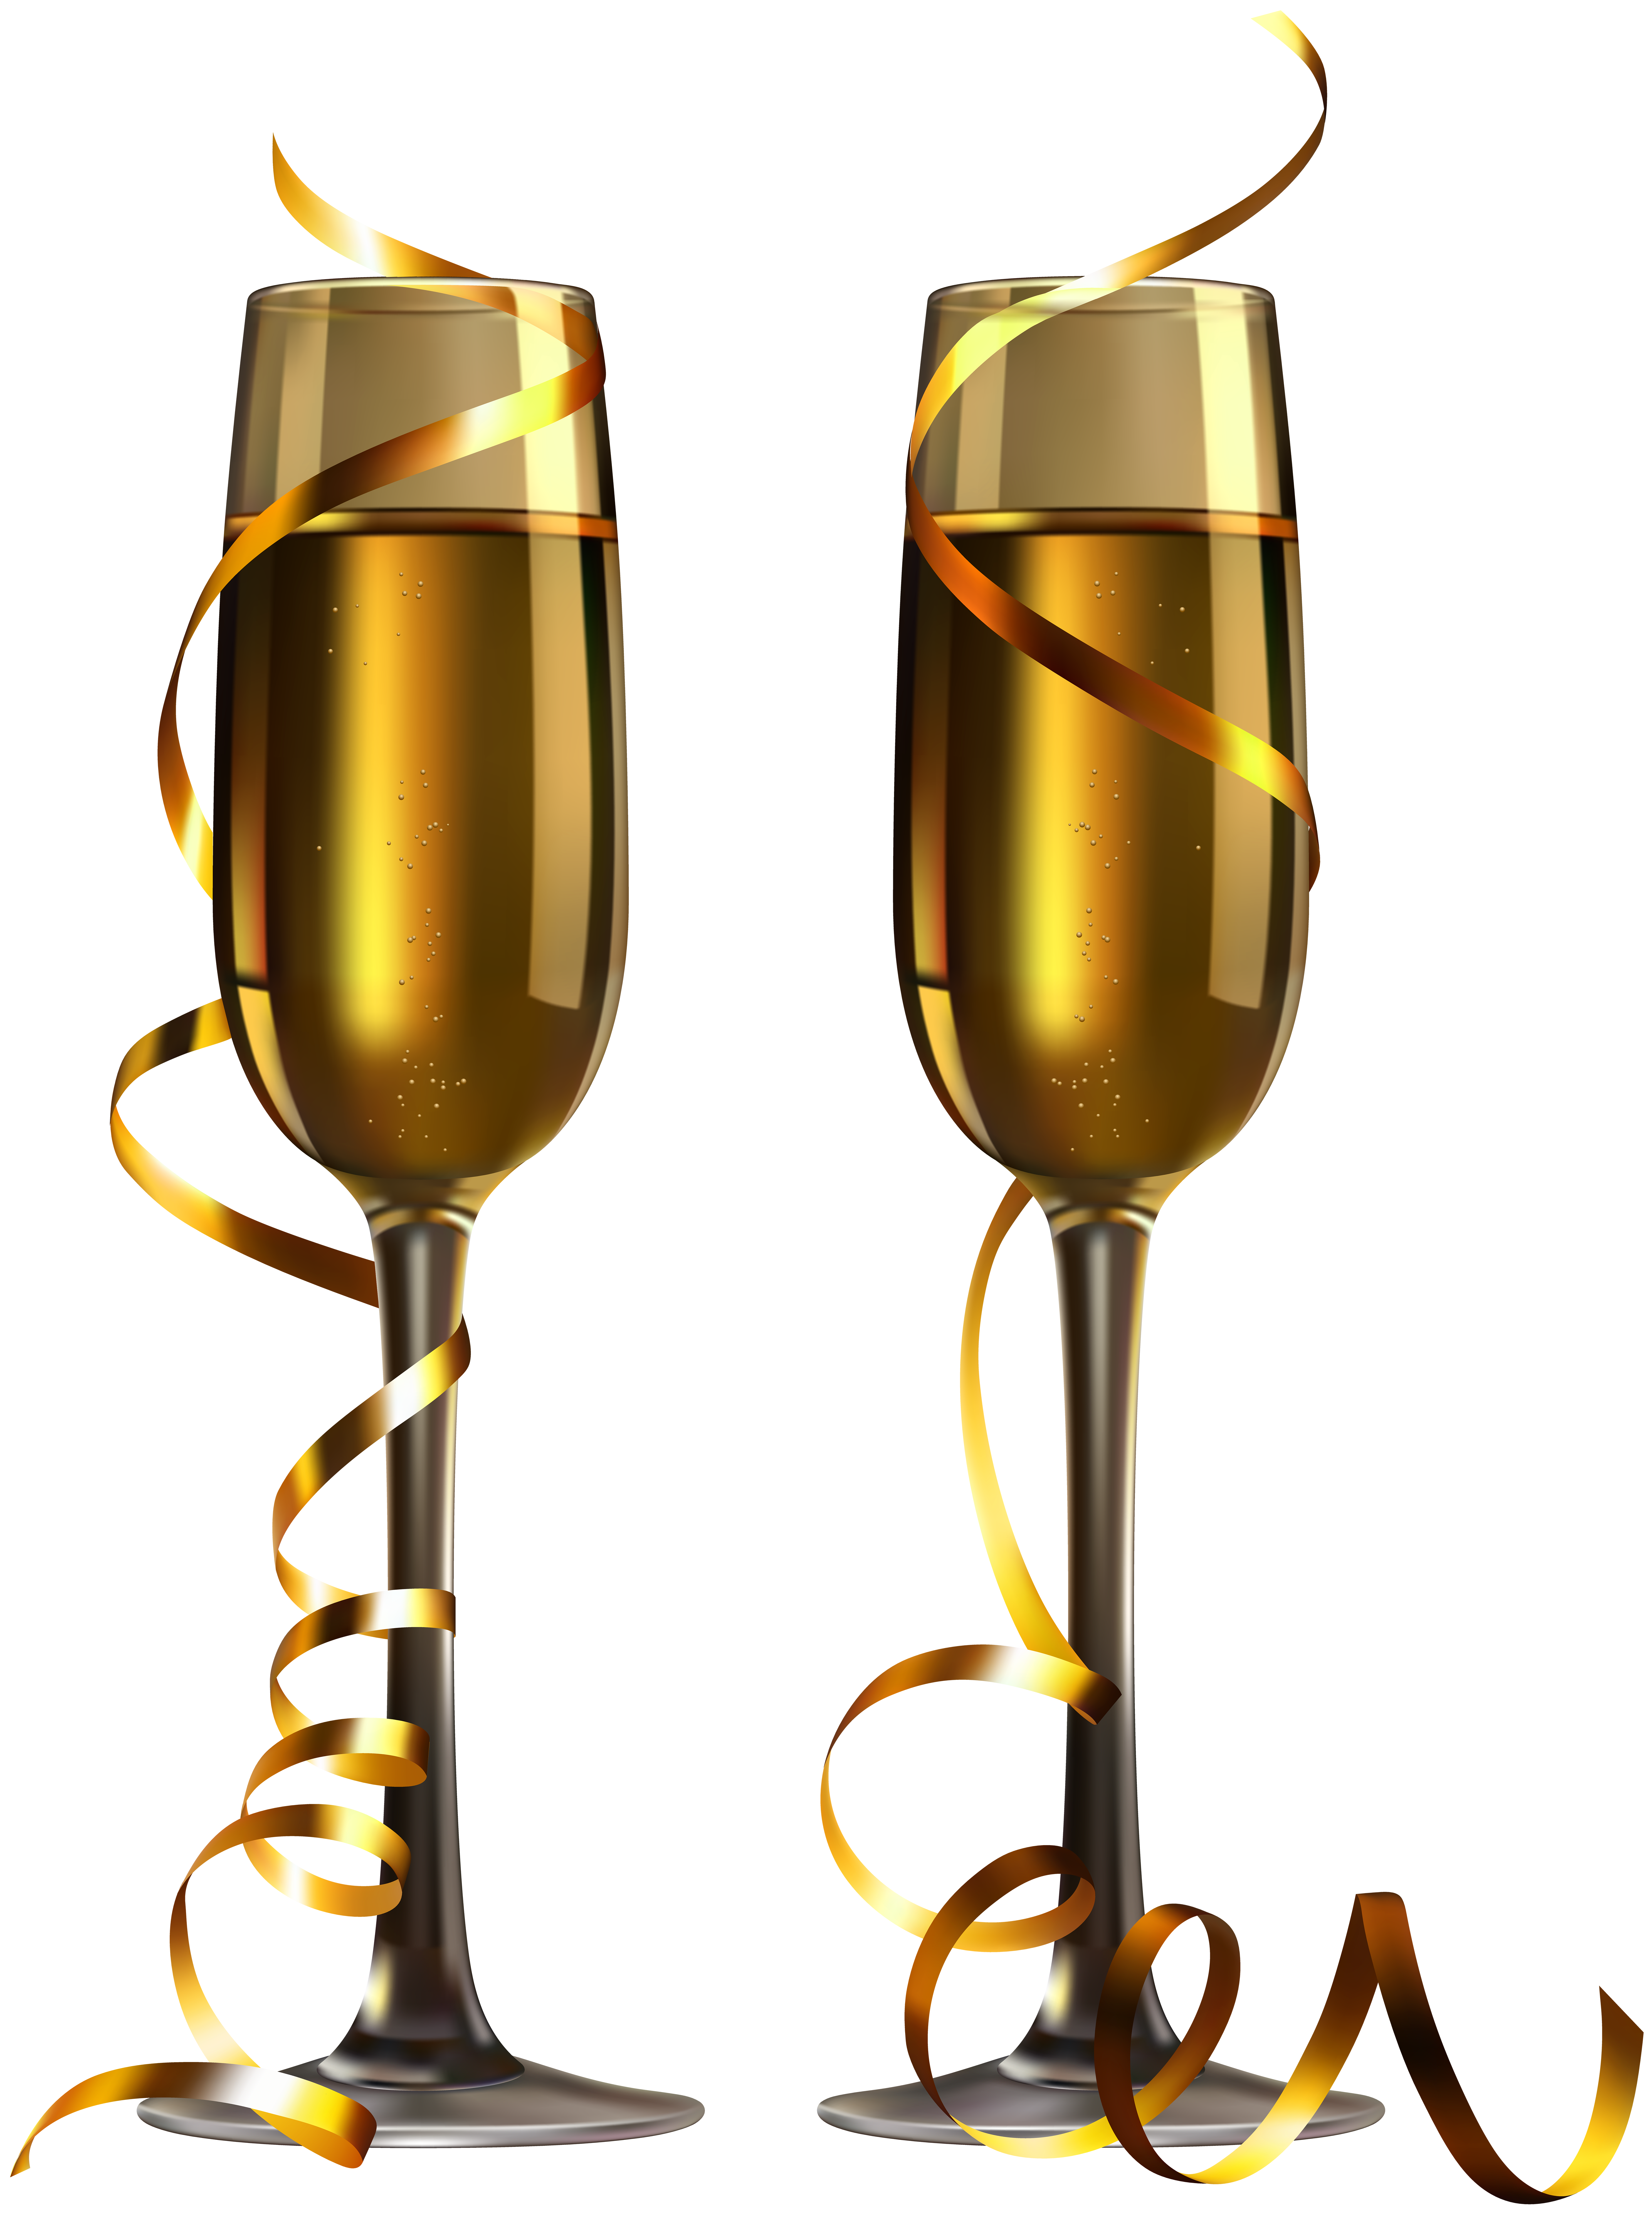 New Year Champagne Glasses PNG Image.